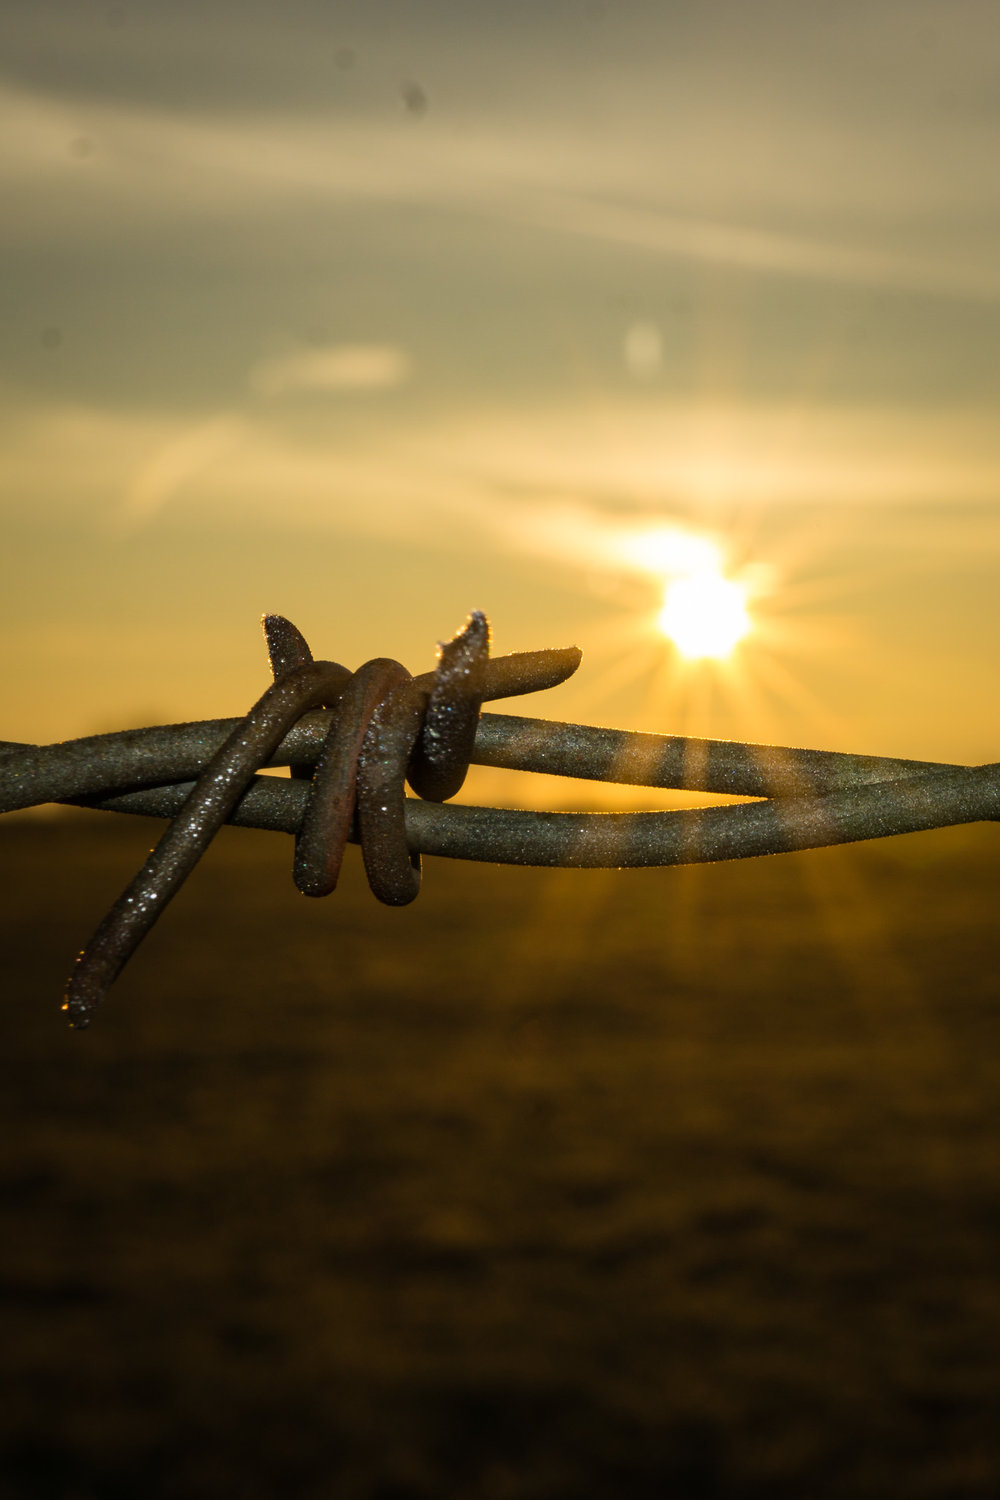 barbed wire fence being highlighted by the morning sun.